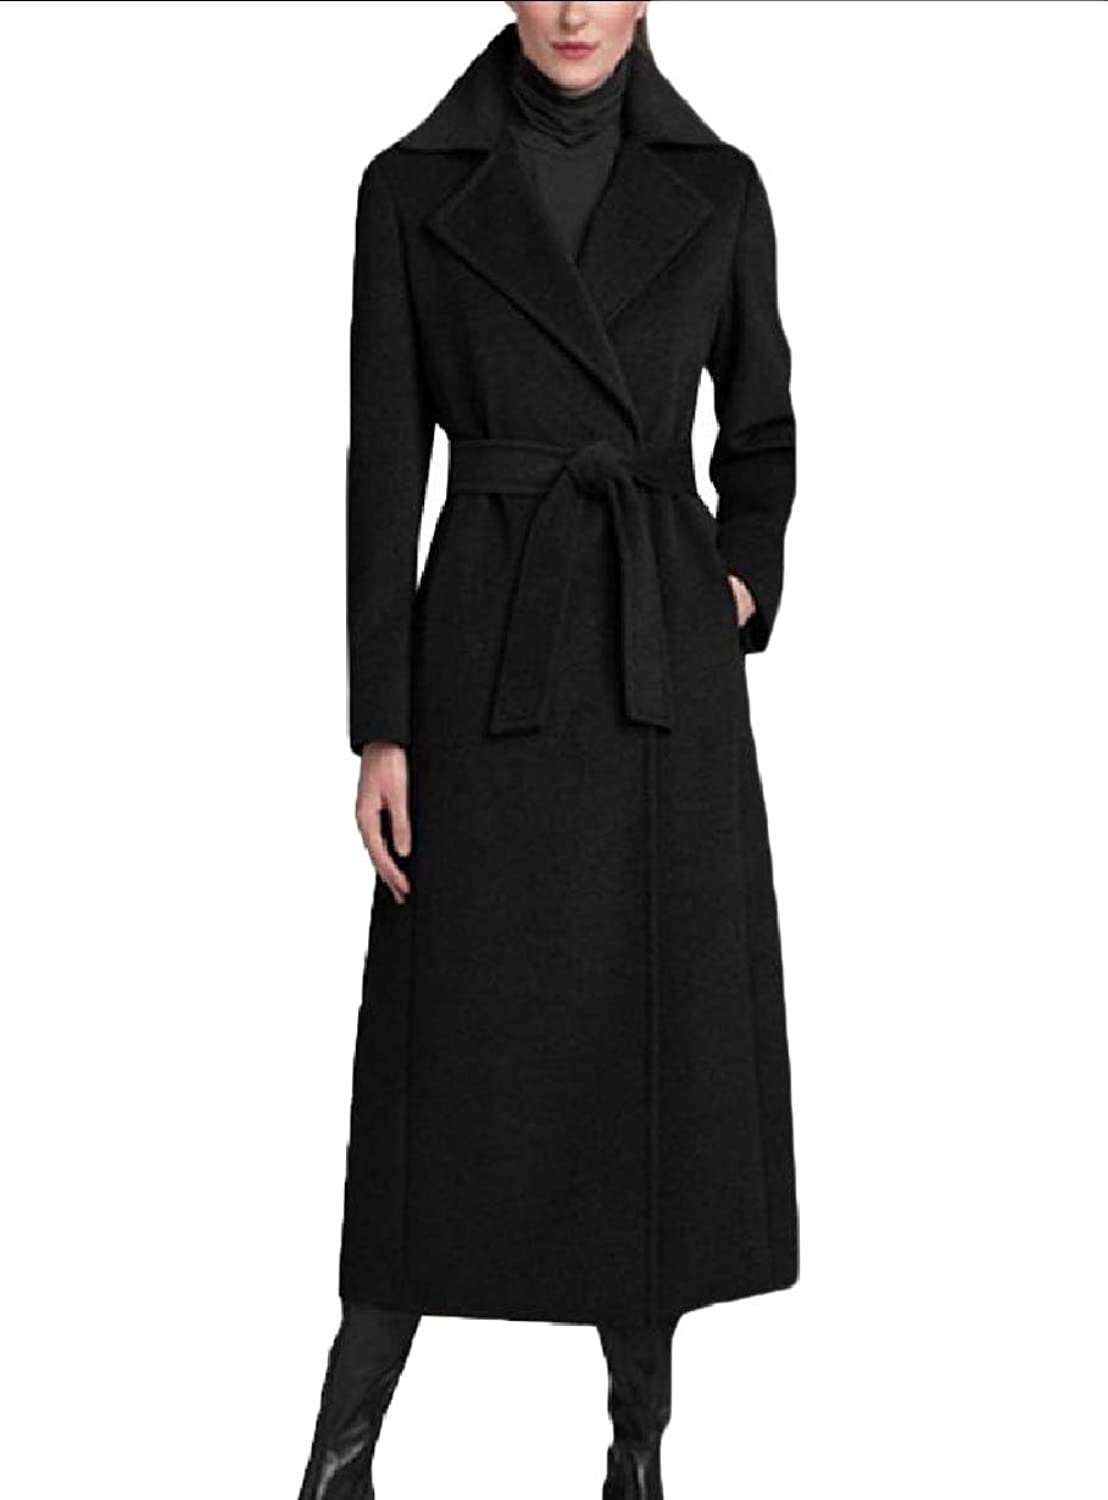 Tootca Womens Classic Premium Long Wool Notch Lapel Fall Woolen Coat